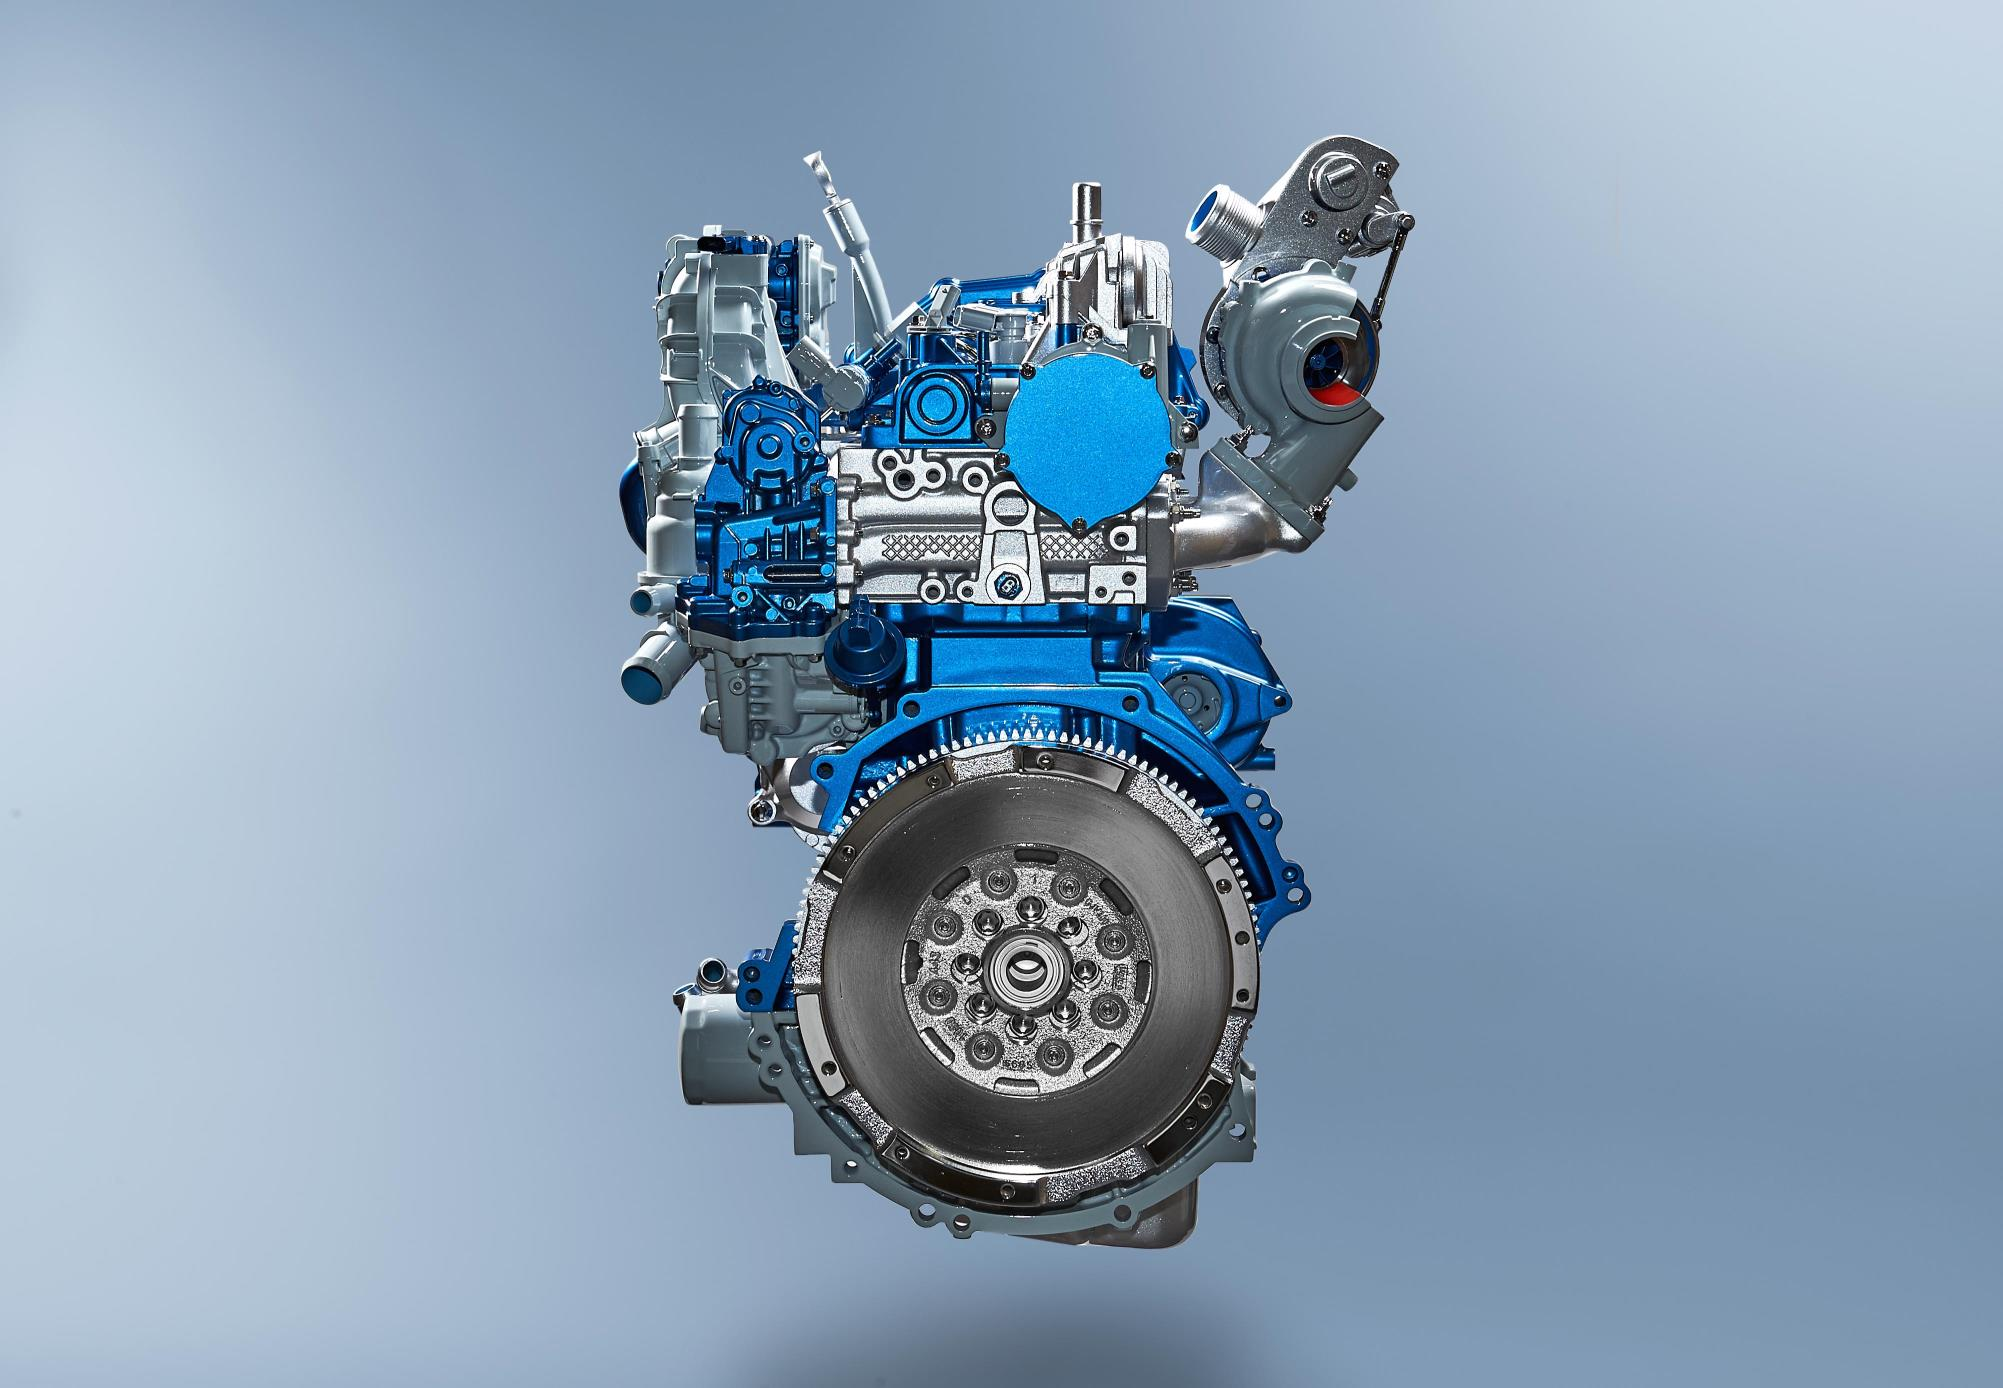 2 0 Ford Ecoblue Engine Described As Being A Diesel Game